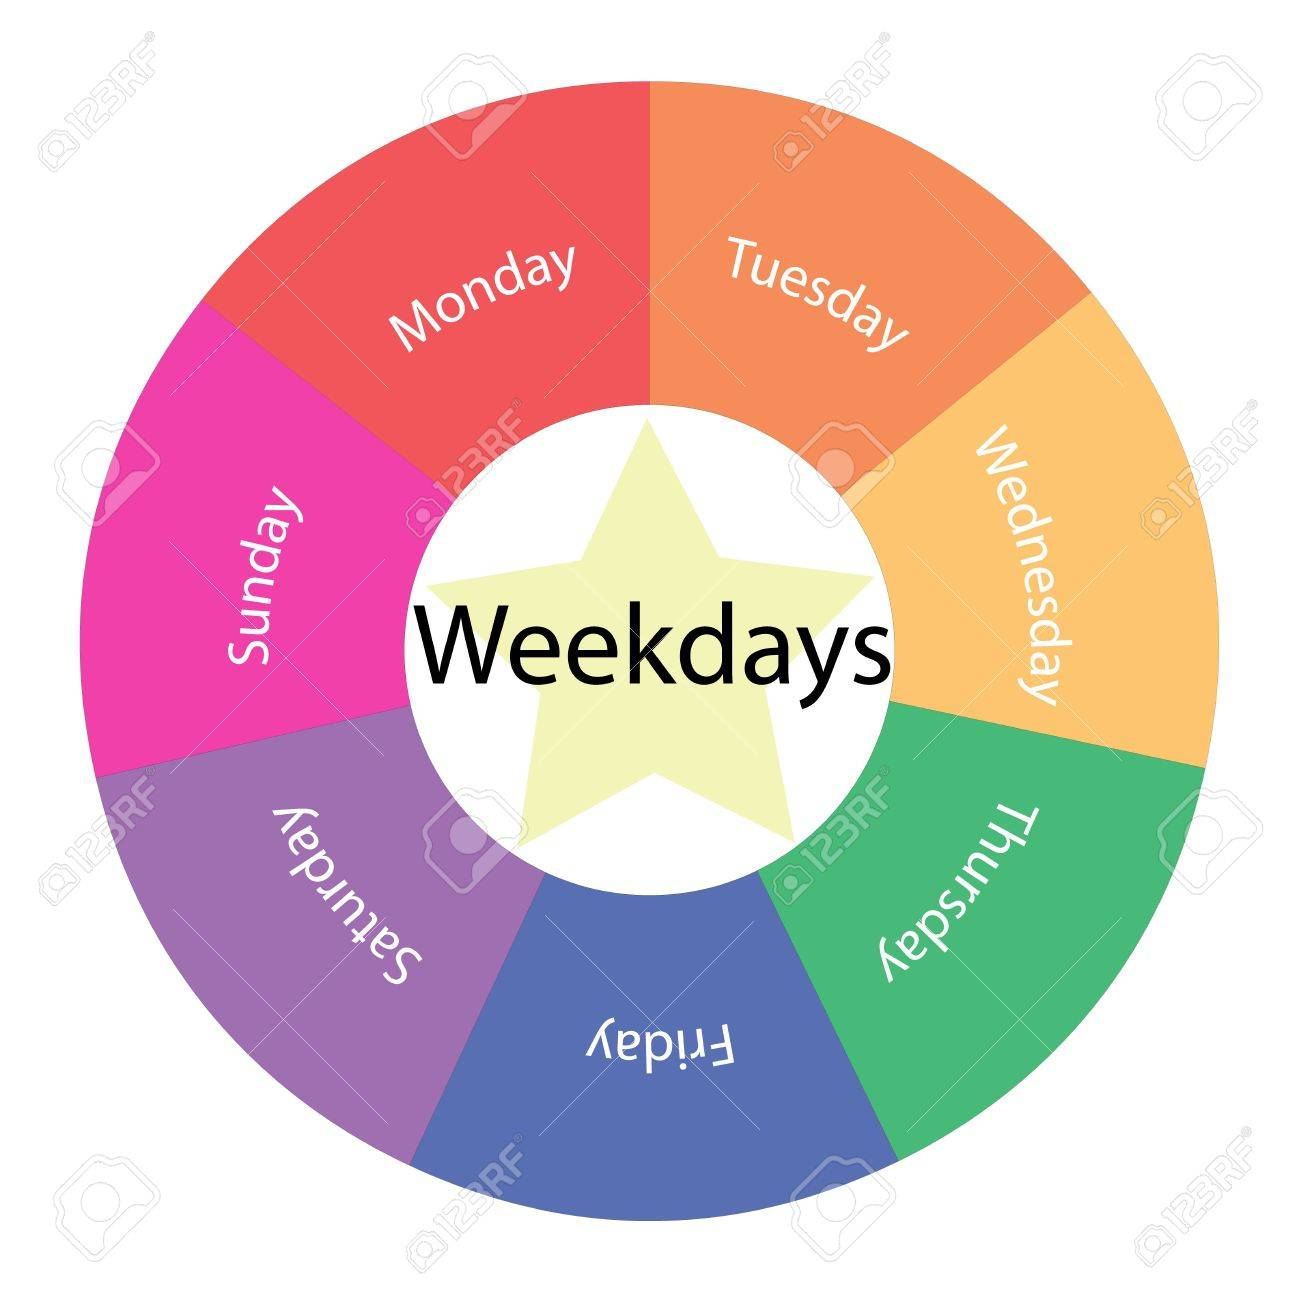 Weekdays Circular Concept With Great Terms Around The Center.. with regard to Monday Through Sunday